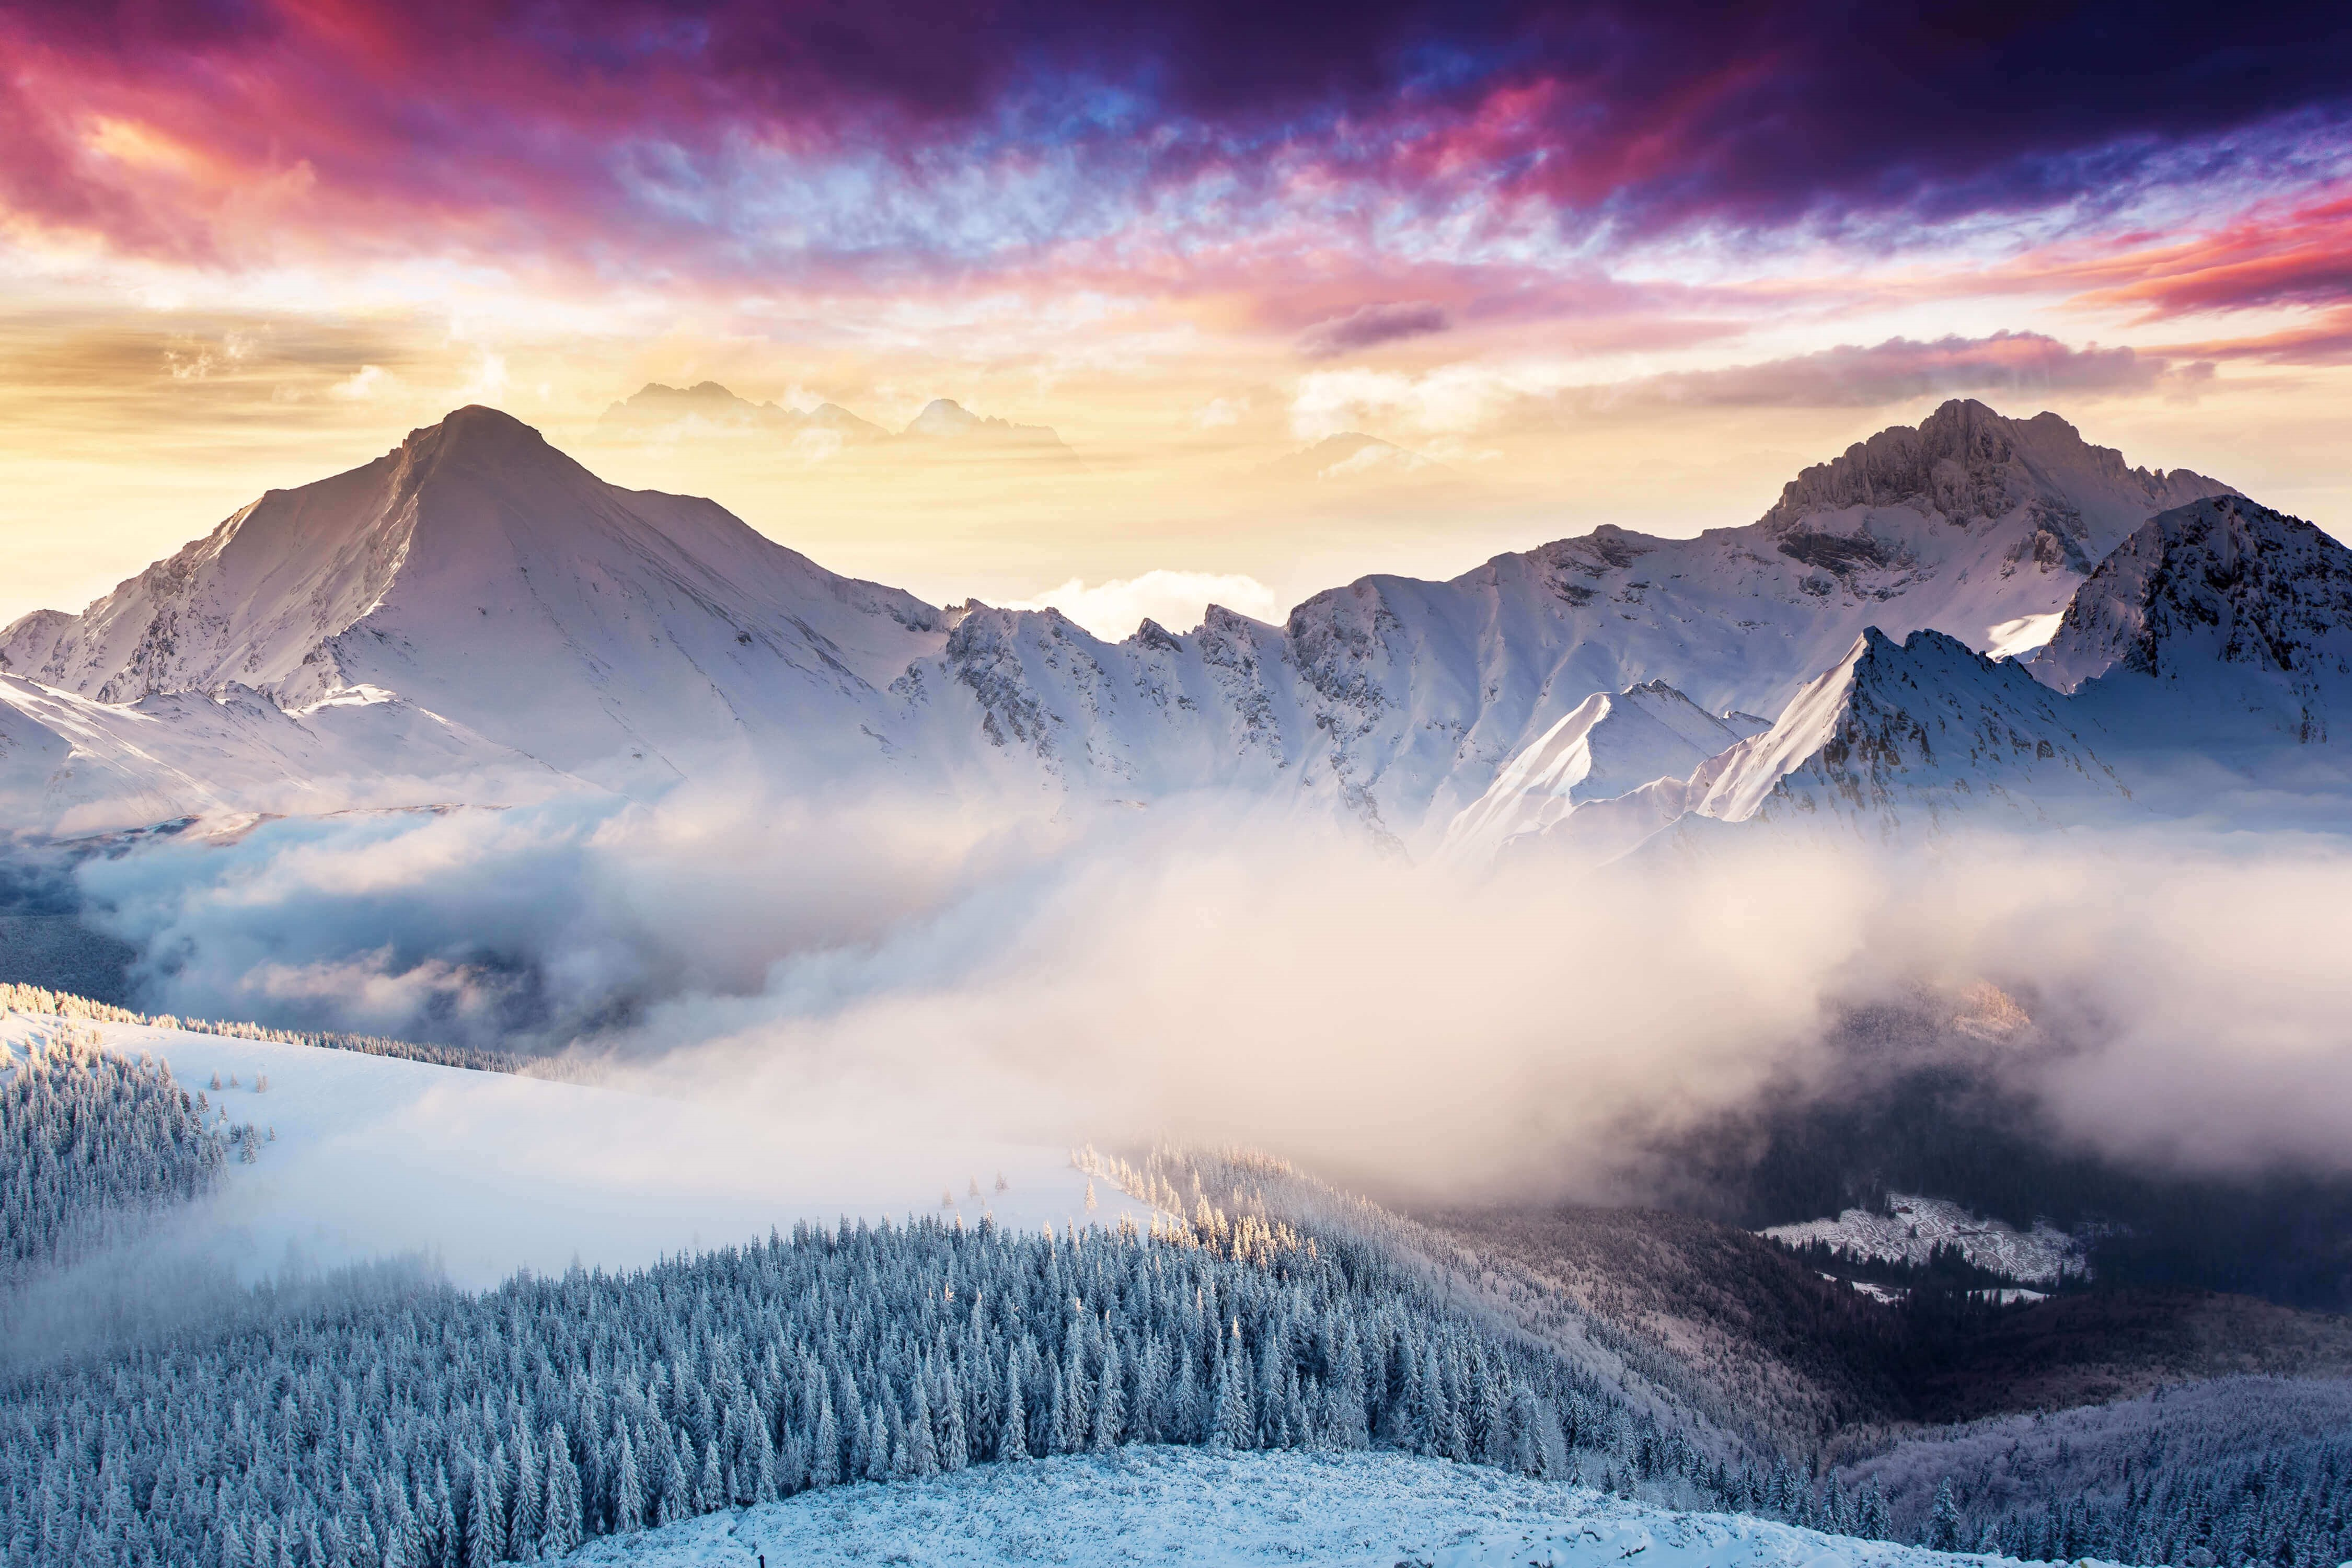 Wallpapers Landscape, Mountains, Winter, Forest, Clouds, Microsoft